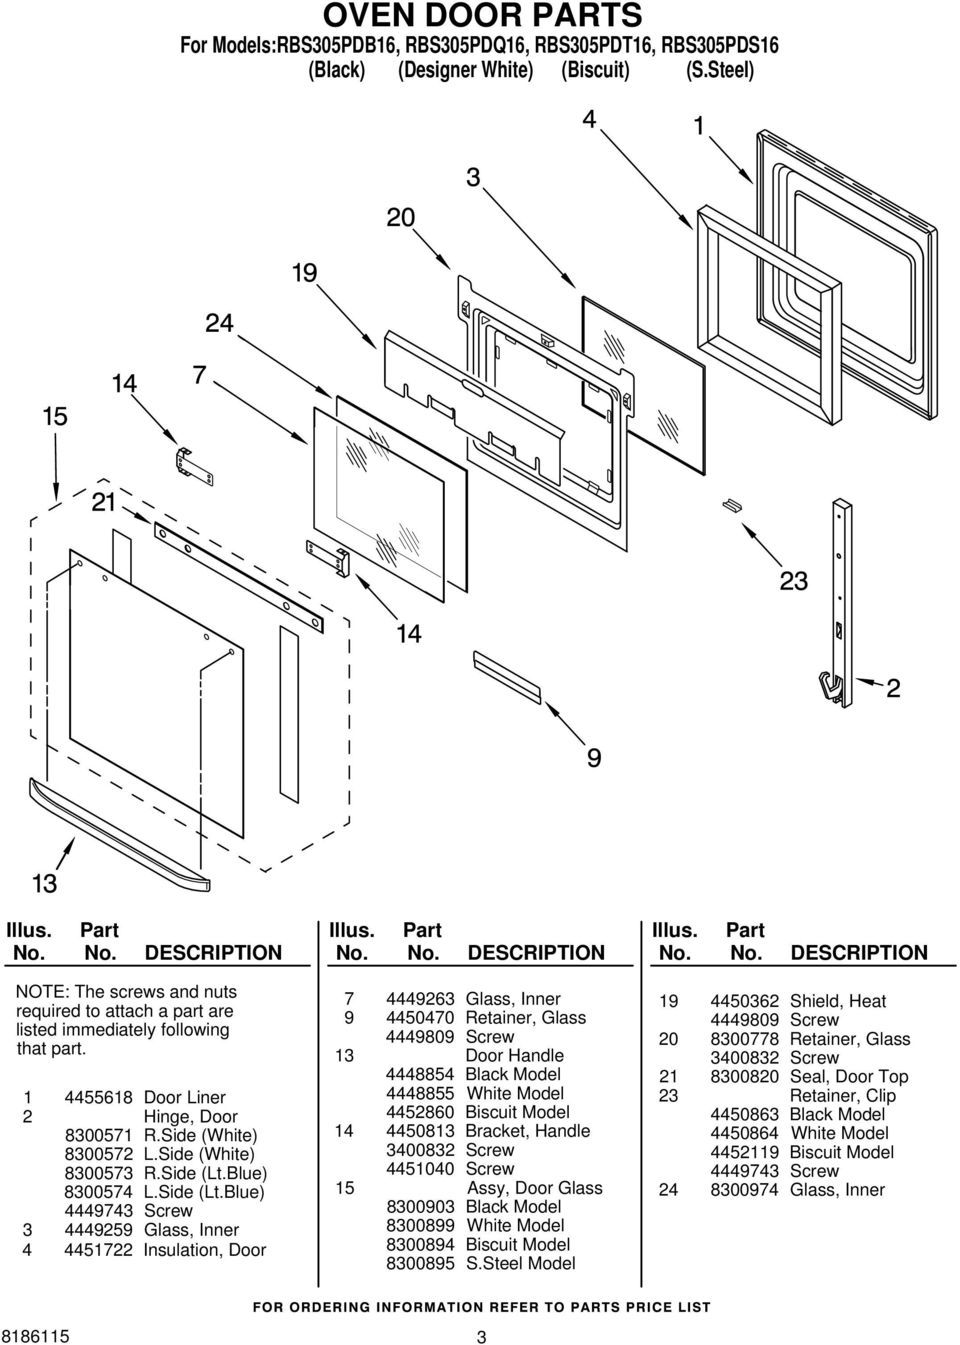 Oven Parts For Modelsrbs305pdb16 Rbs305pdq16 Rbs305pdt16 Door Shroud Latch Assembly Diagram And List Maytag Blue 4449743 Screw 3 4449259 Glass Inner 4 4451722 Insulation 7 4449263